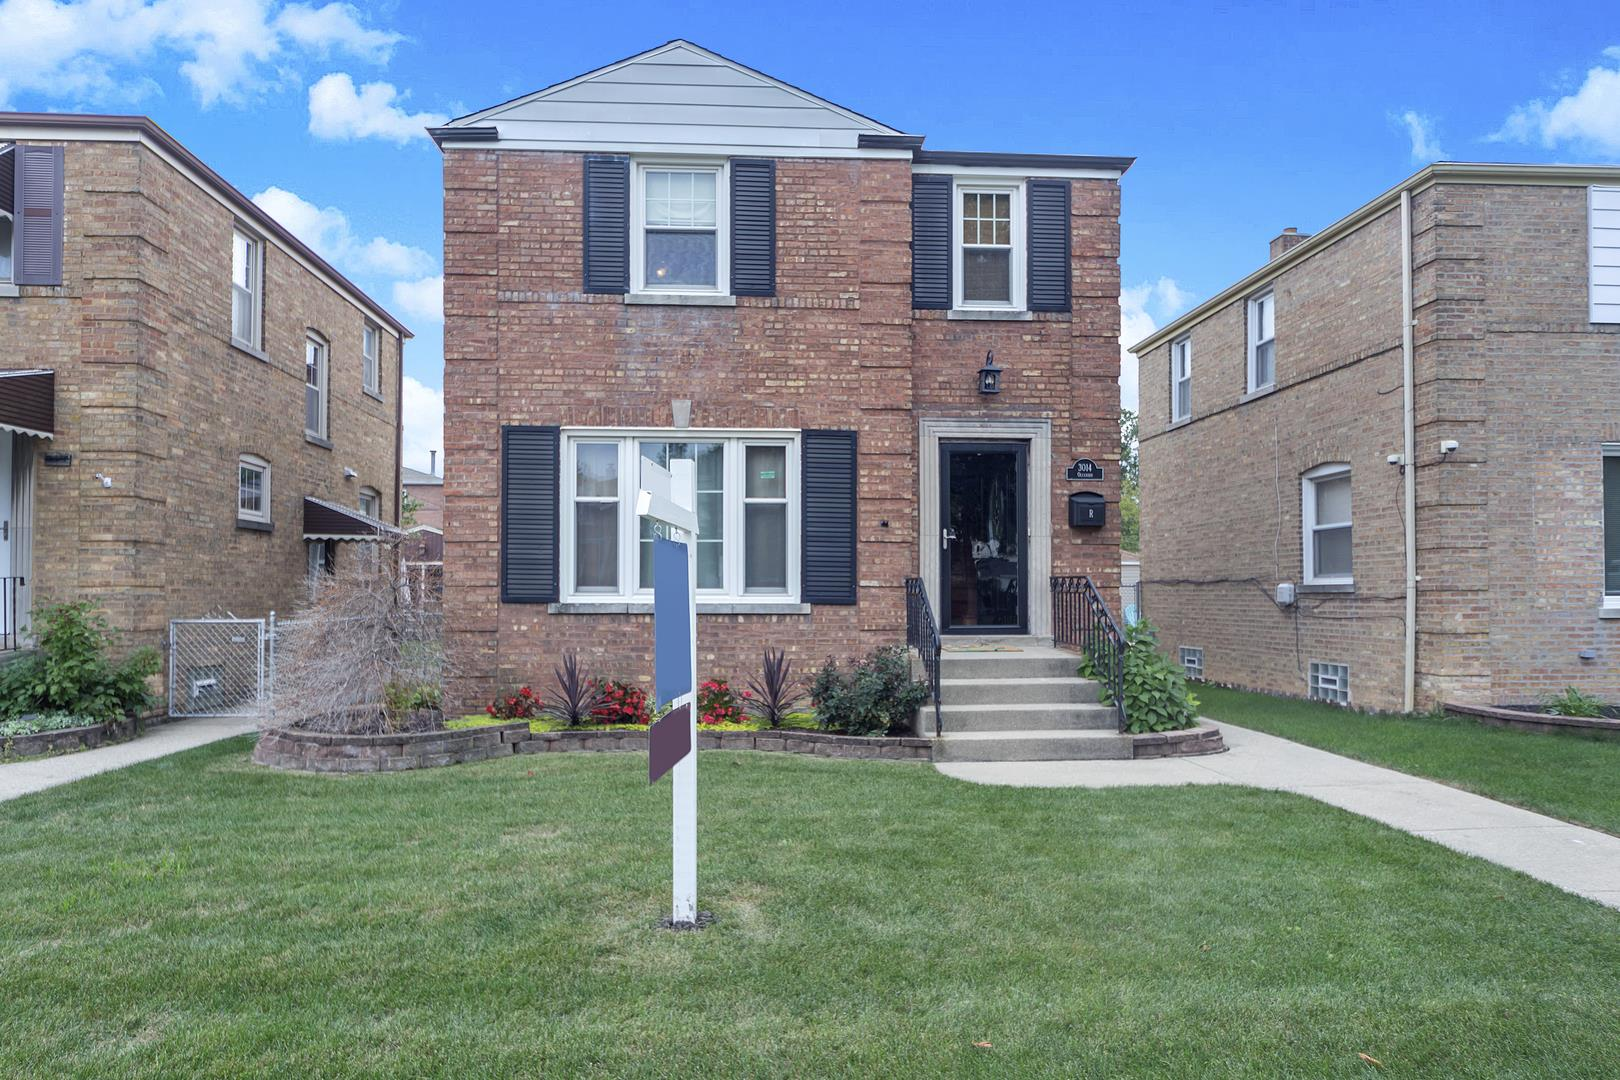 3014 N OLEANDER Avenue, Chicago, IL 60707 - #: 10606305